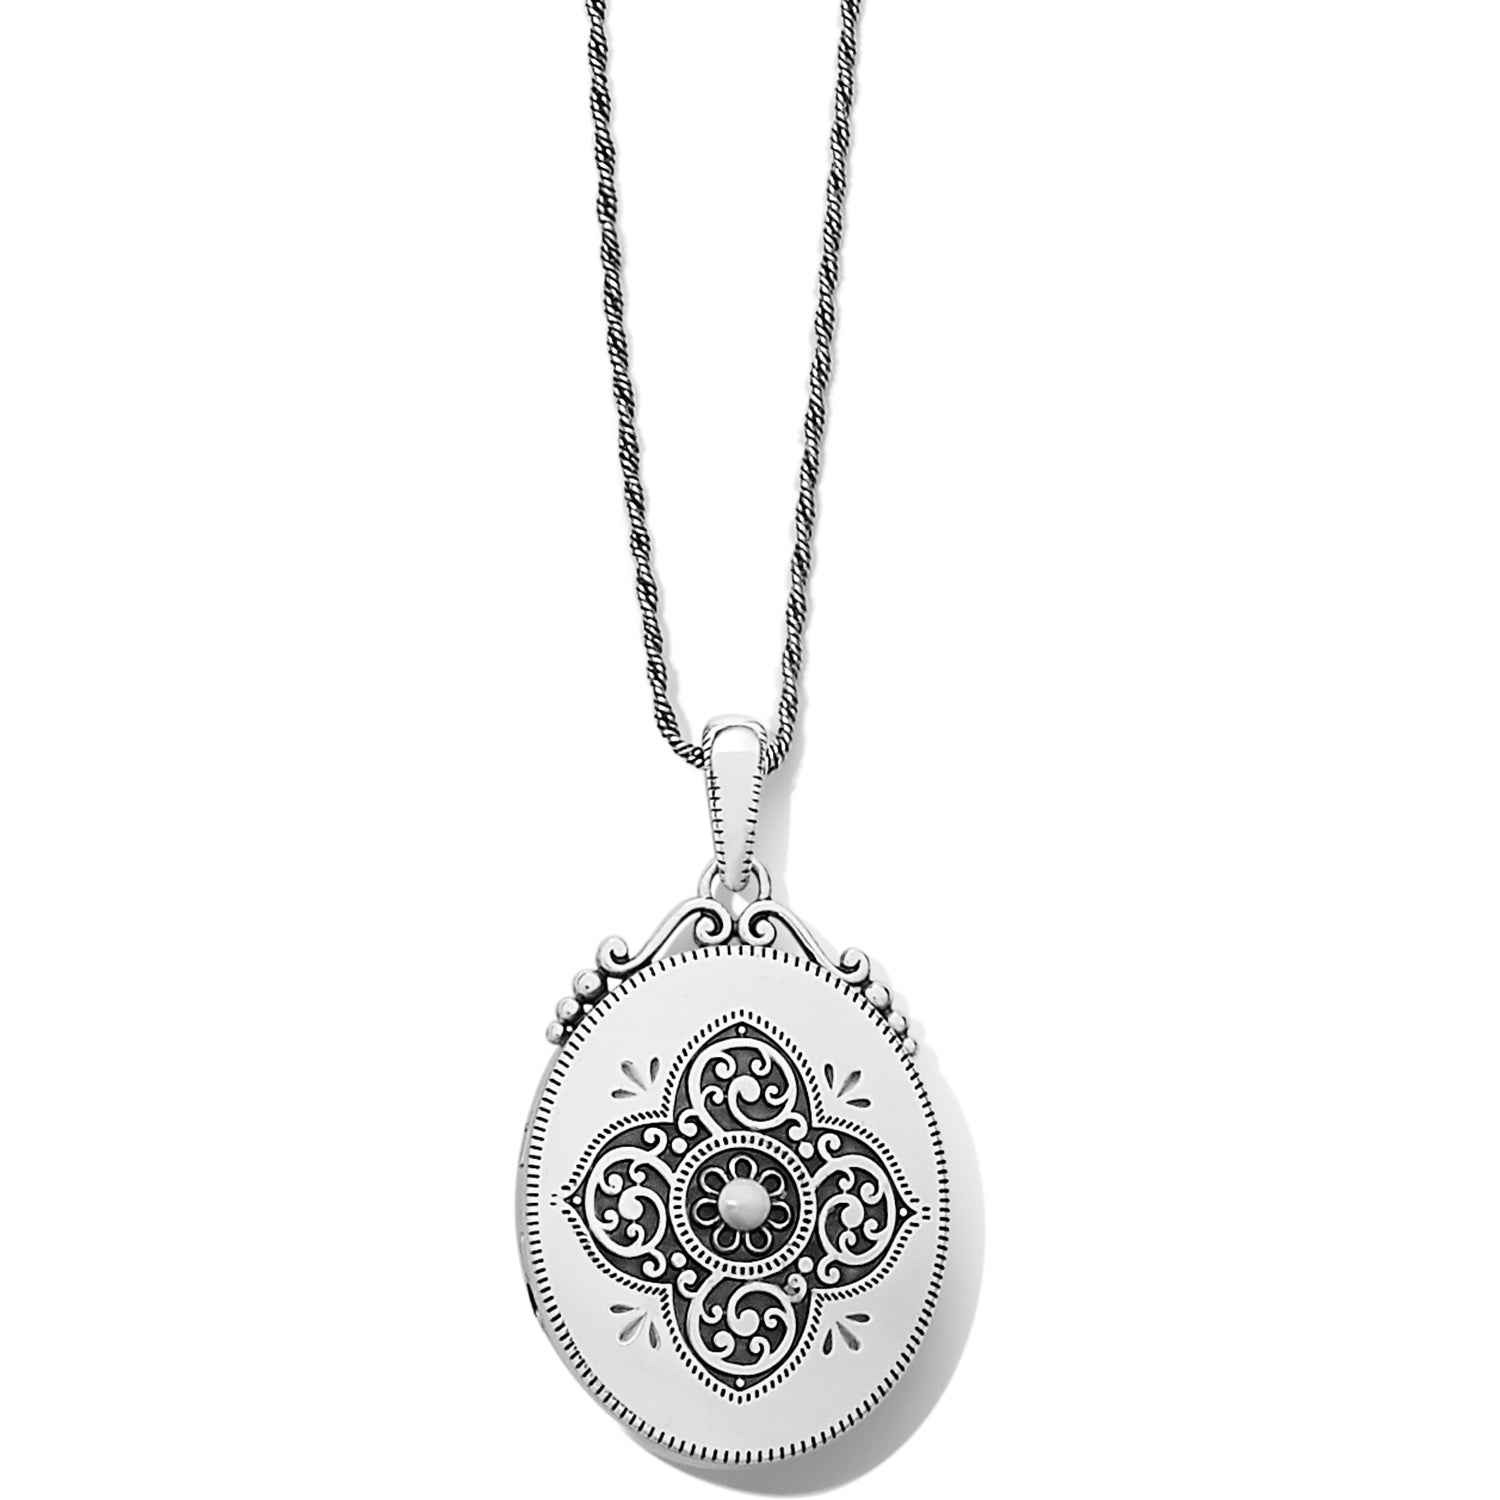 Etoile Oval Convertible Locket Necklace